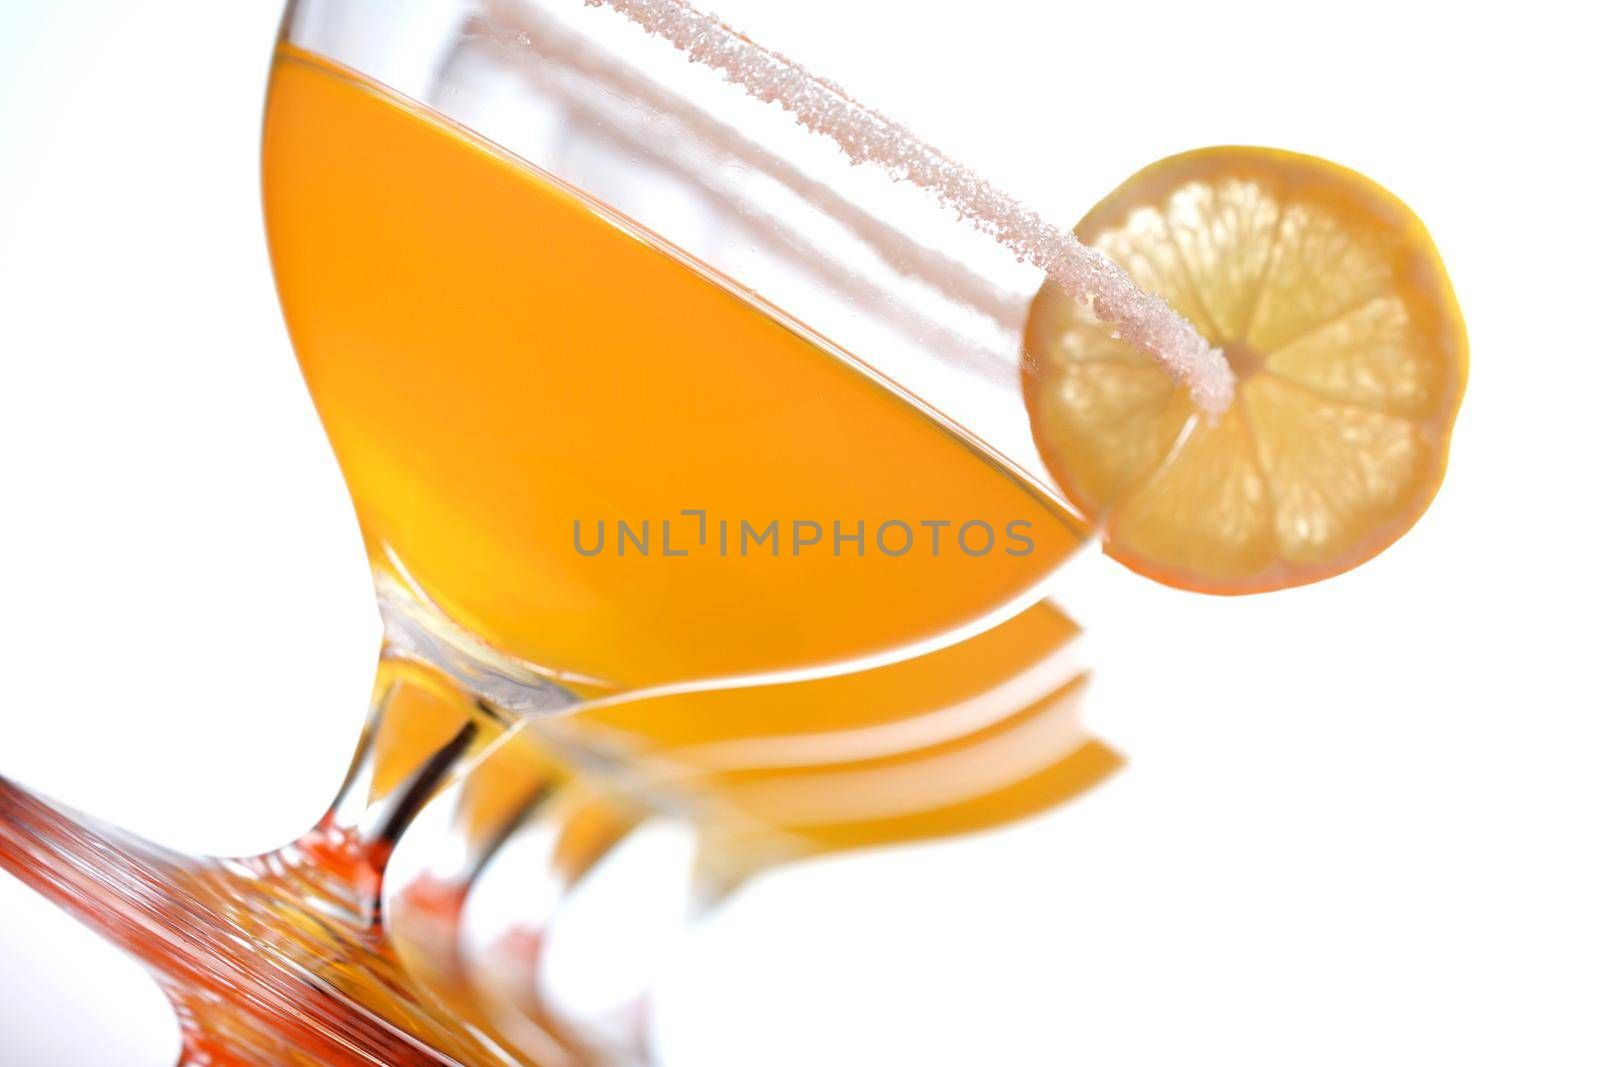 Stock photography images